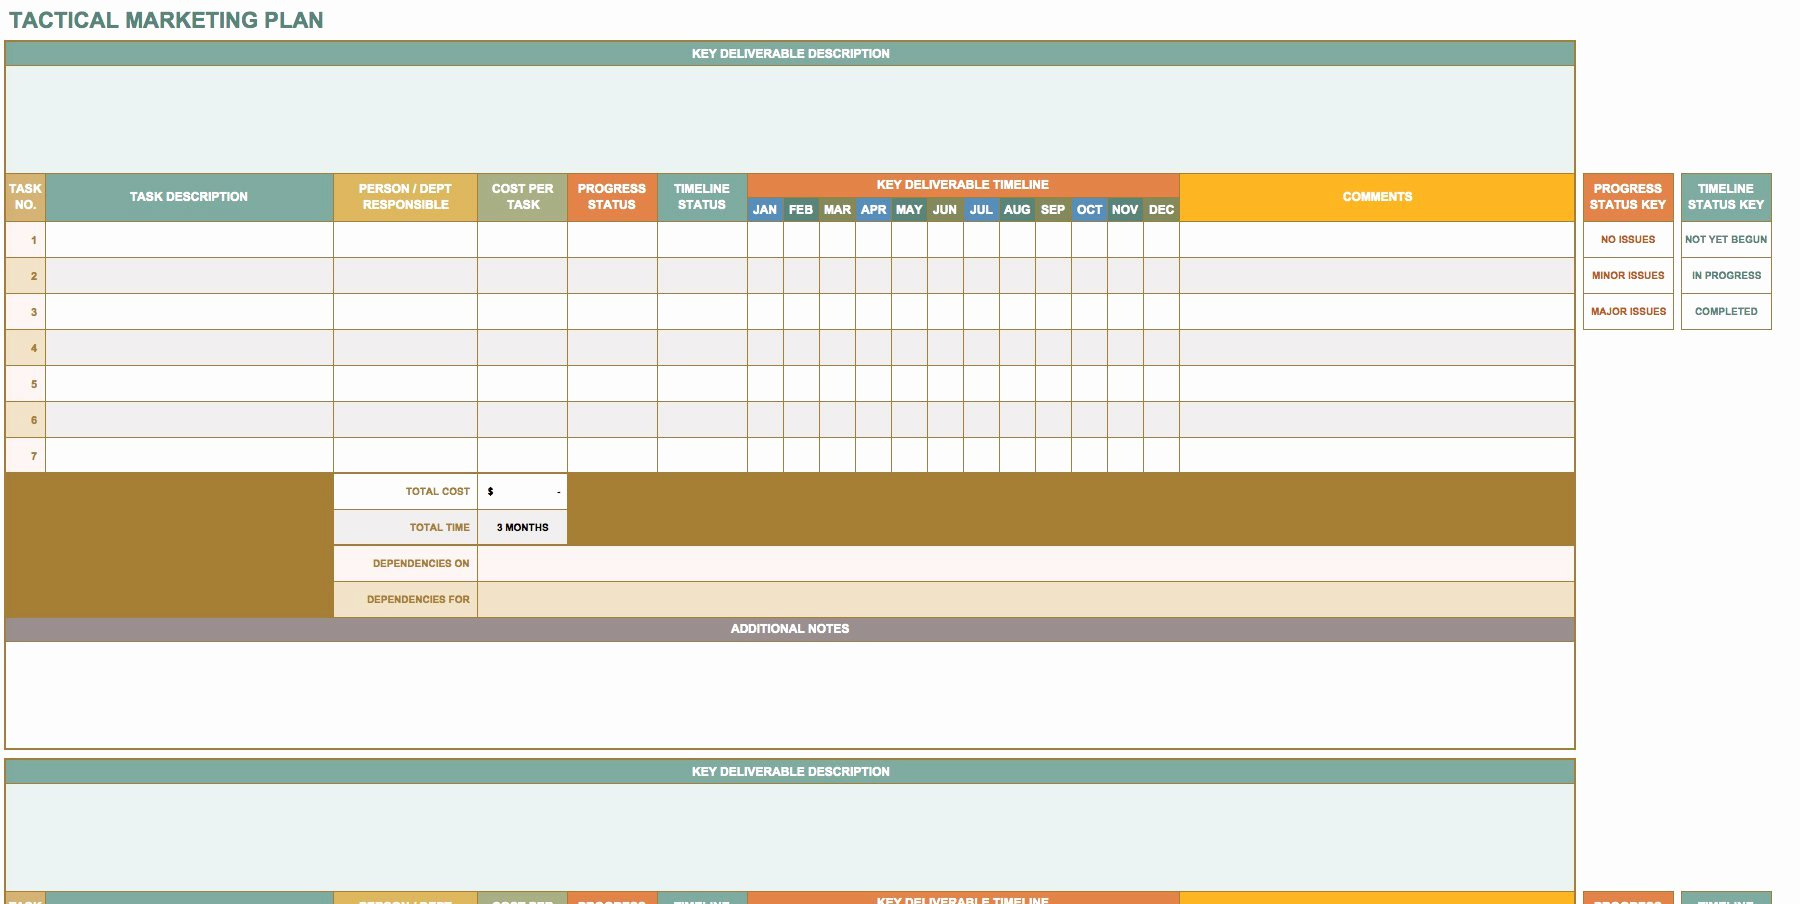 Strategic Plan Template Excel Awesome Free Marketing Plan Templates for Excel Smartsheet